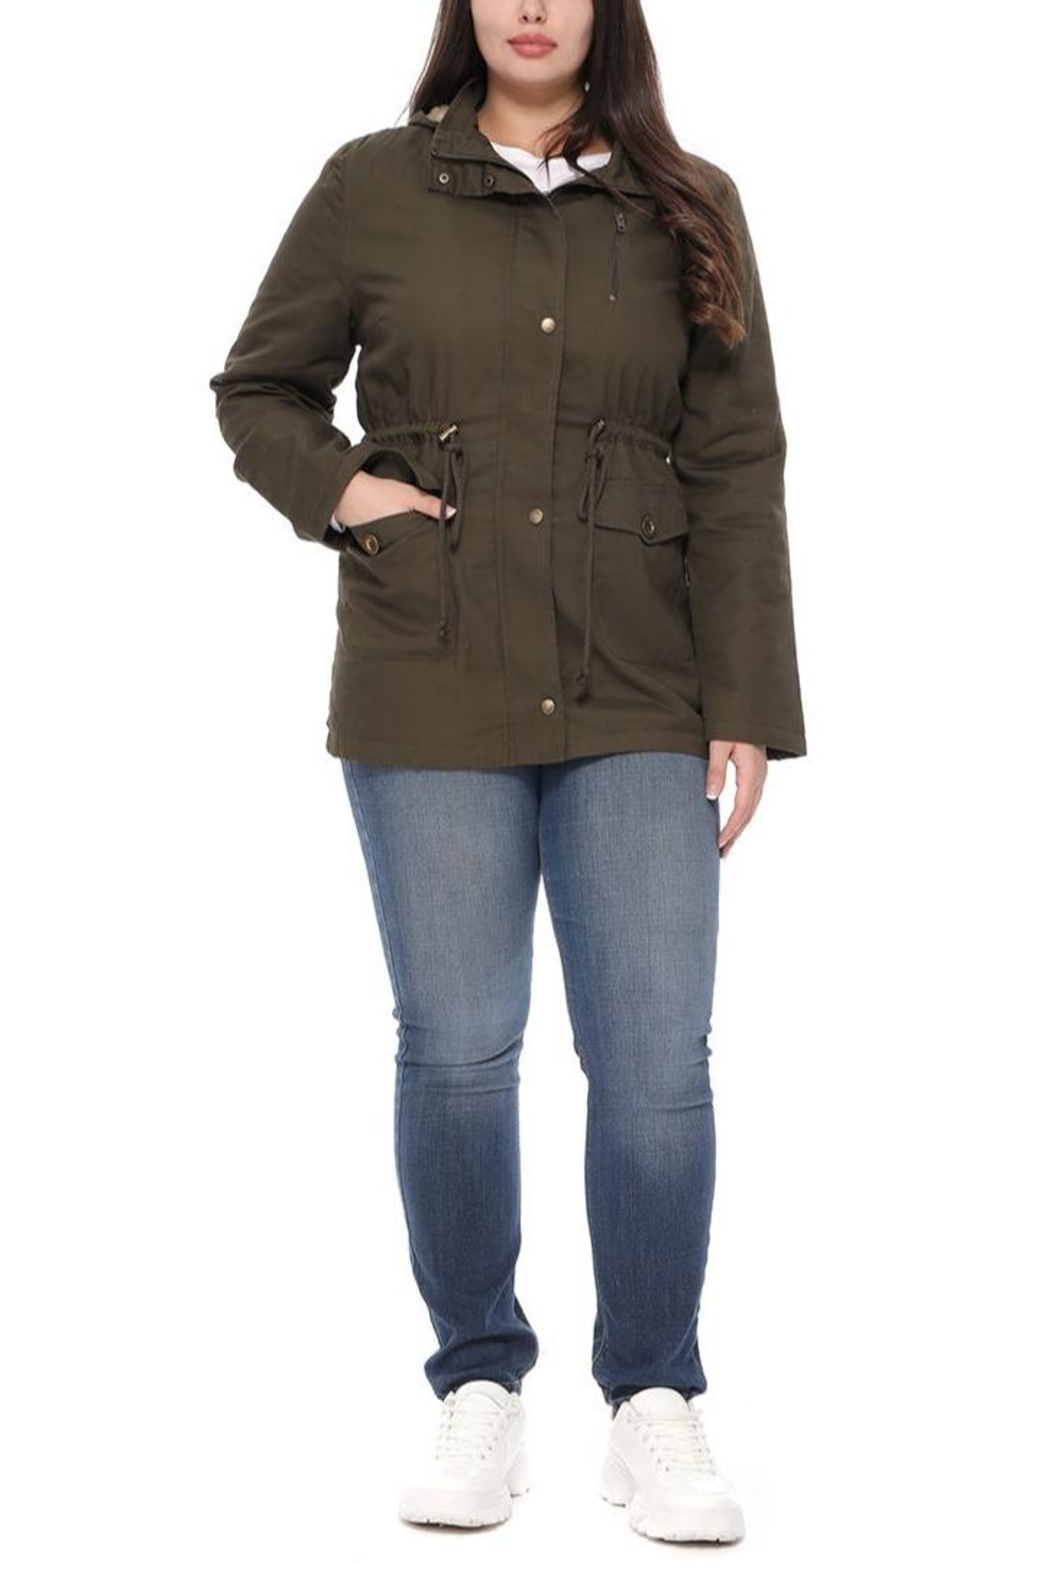 1 Funky Military Plussizejaket Furinside - Side Cropped Image